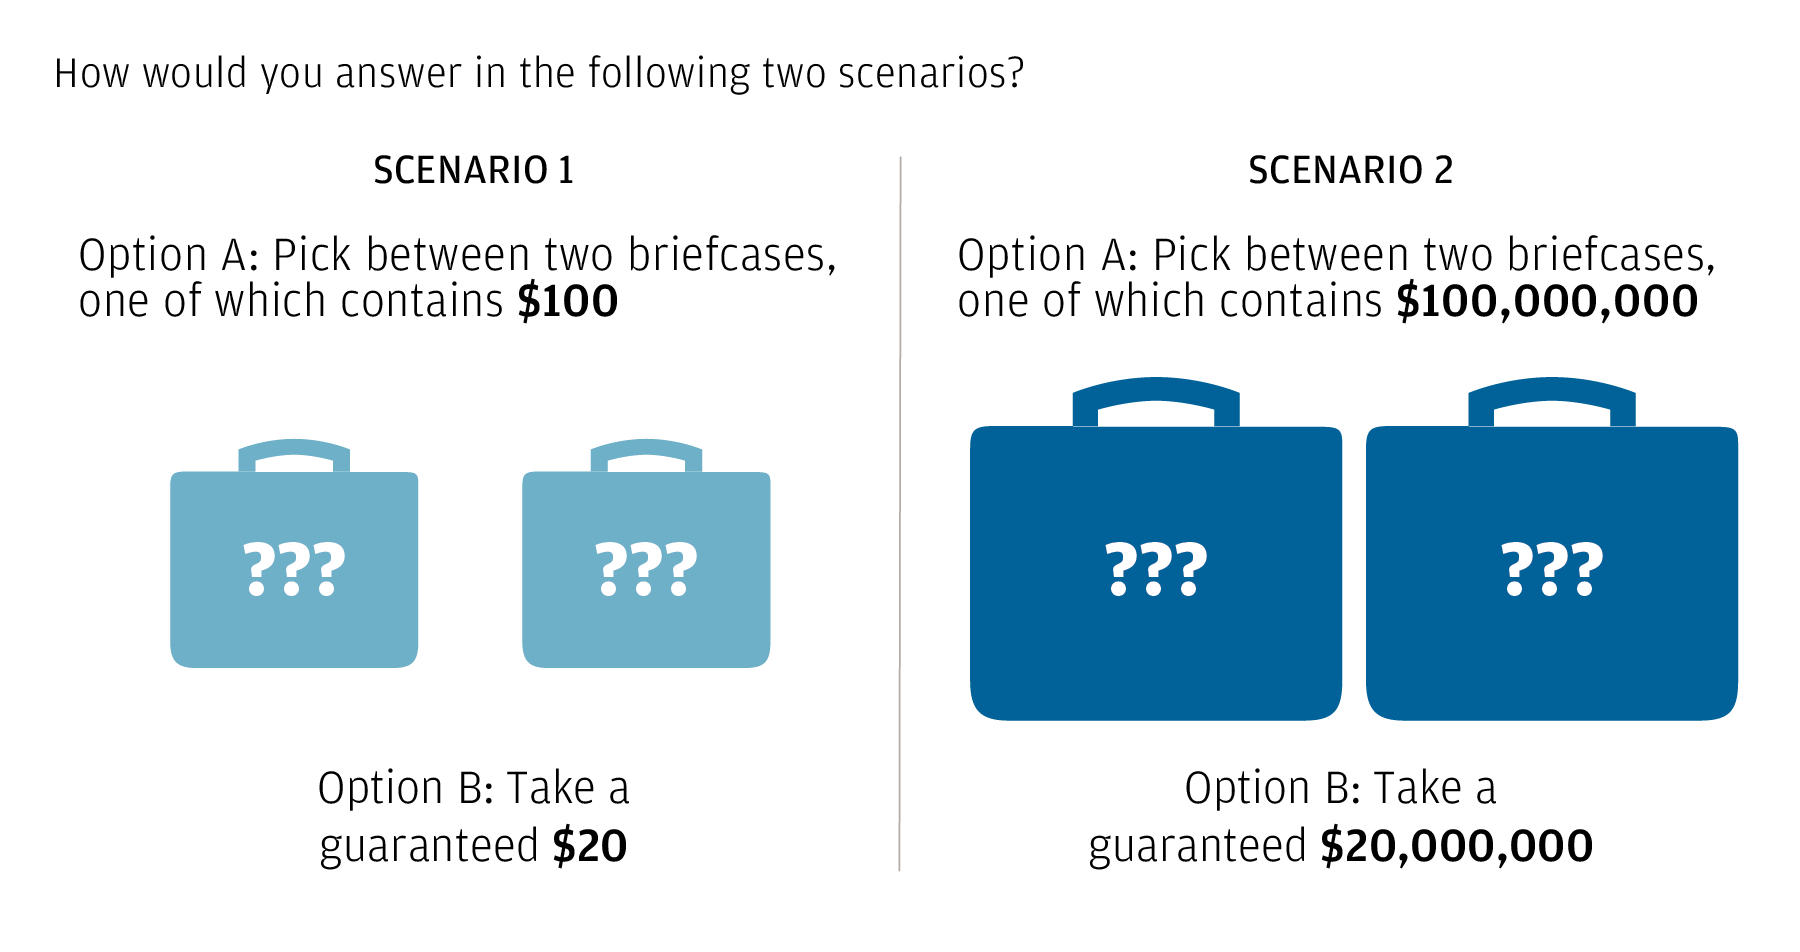 The graphic shows two scenarios with similar odds but different financial outcomes.